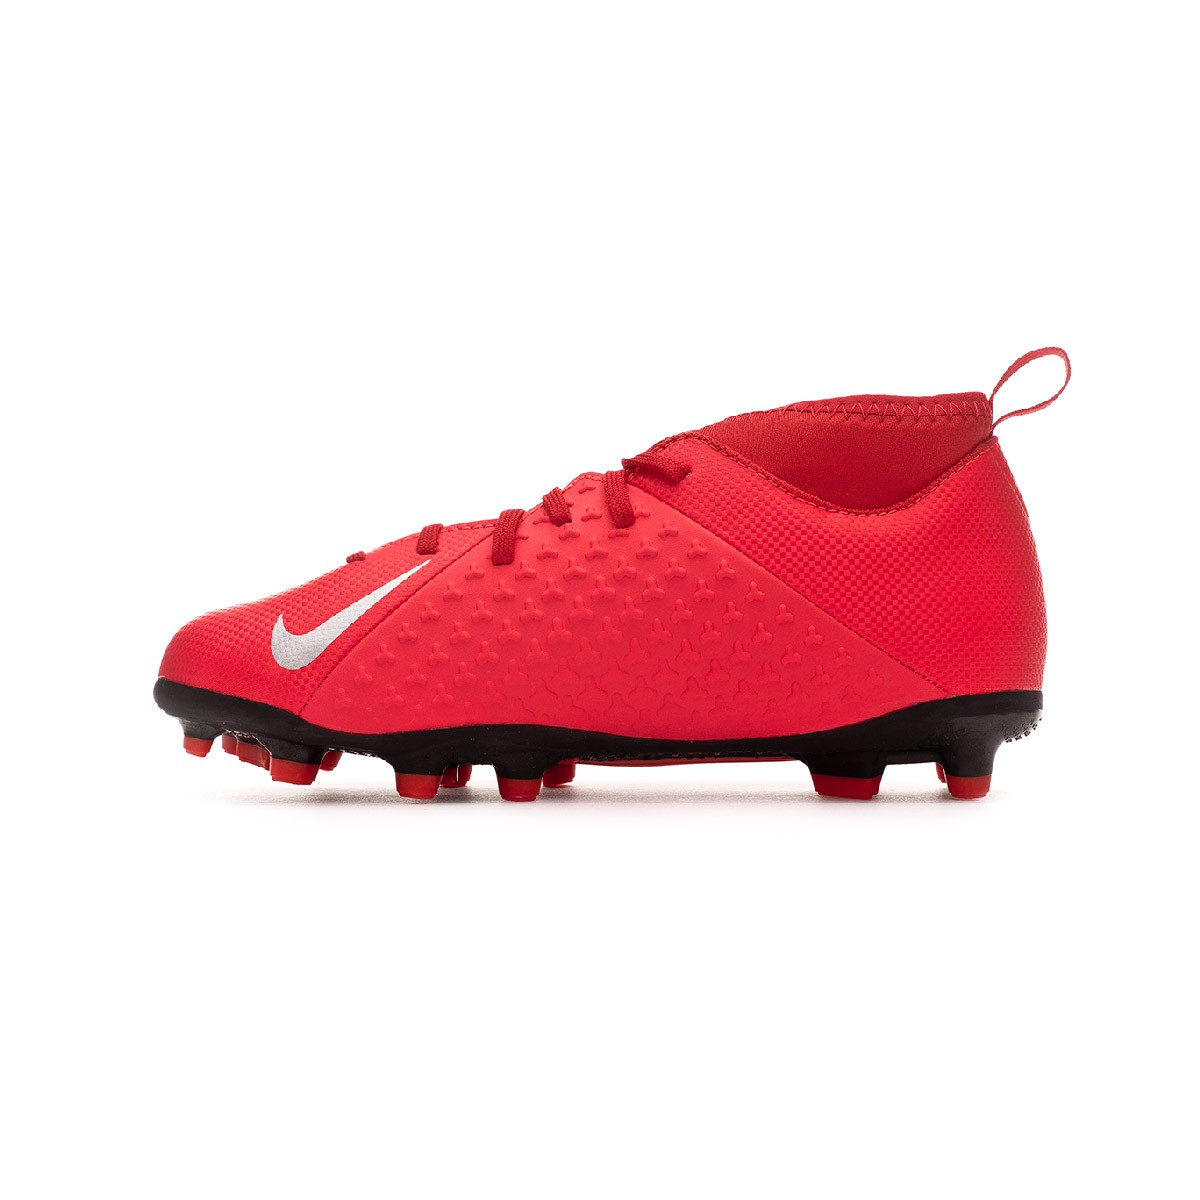 0fc9b573044e8 Football Boots Nike Kids Phantom Vision Club DF FG MG Bright  crimson-Metallic silver - Tienda de fútbol Fútbol Emotion